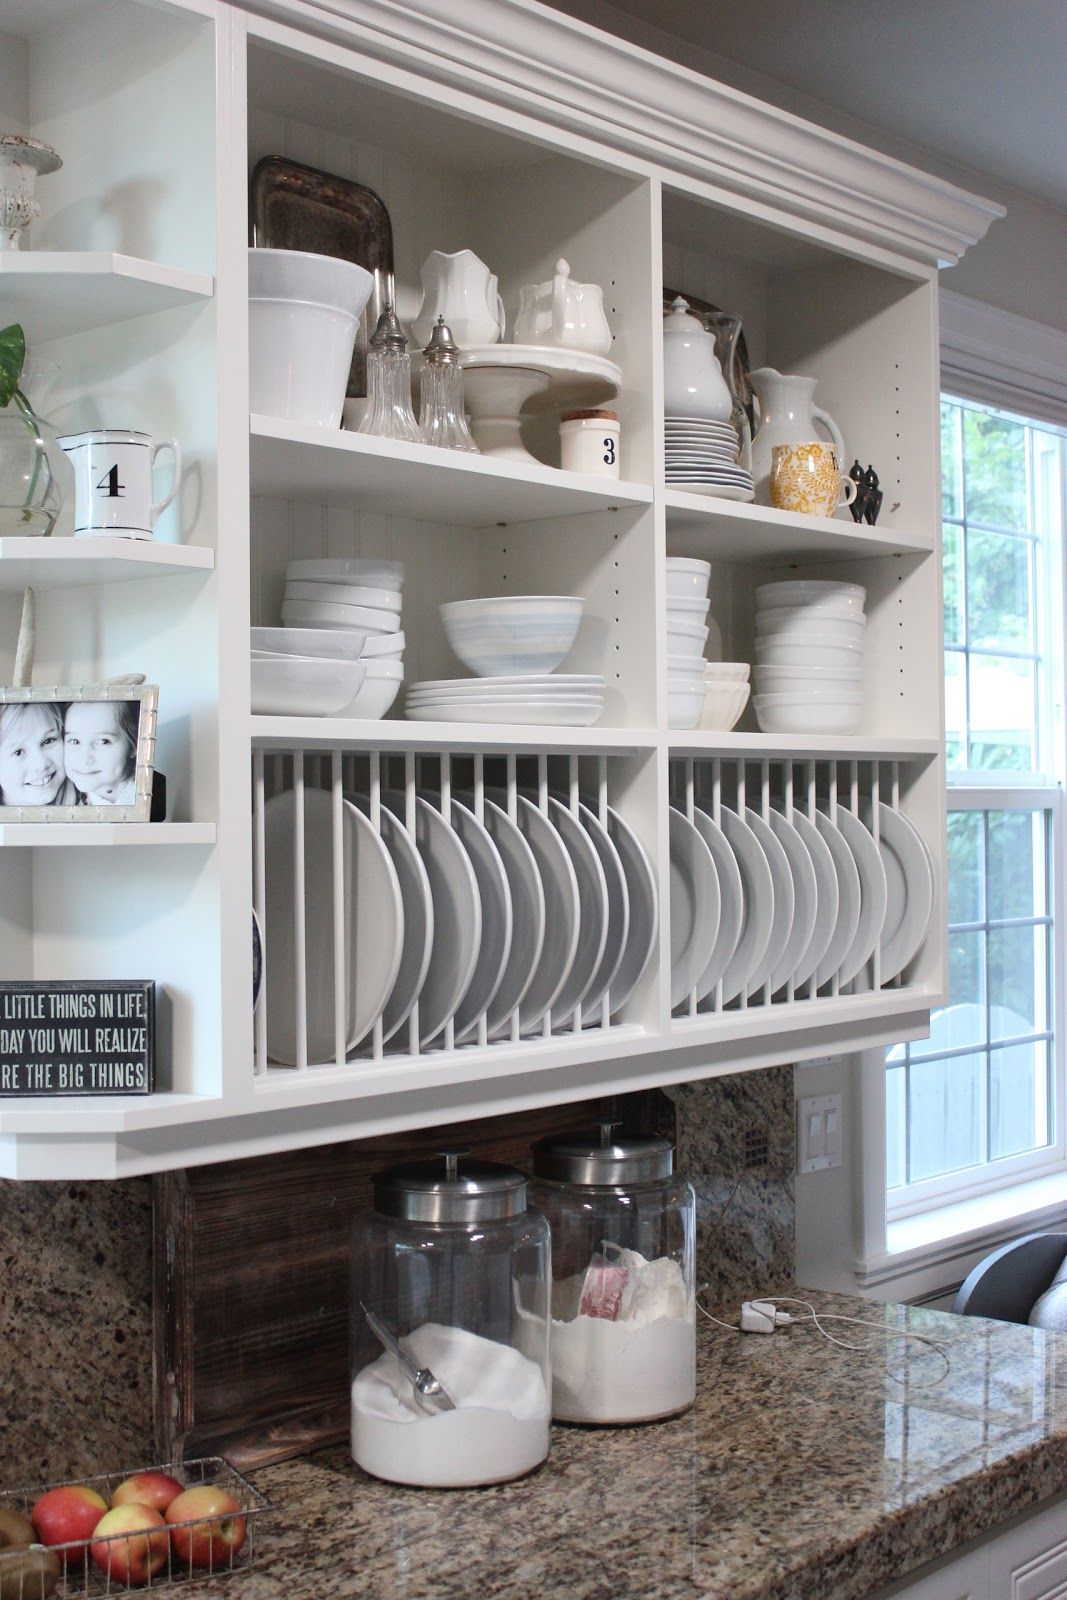 Open Kitchen Cabinets Is Also A Great Alternative To Standard Upper Cabinets That Is Perfect To Open Kitchen Shelves Open Kitchen Cabinets Kitchen Wall Shelves Alternative to kitchen cabinets